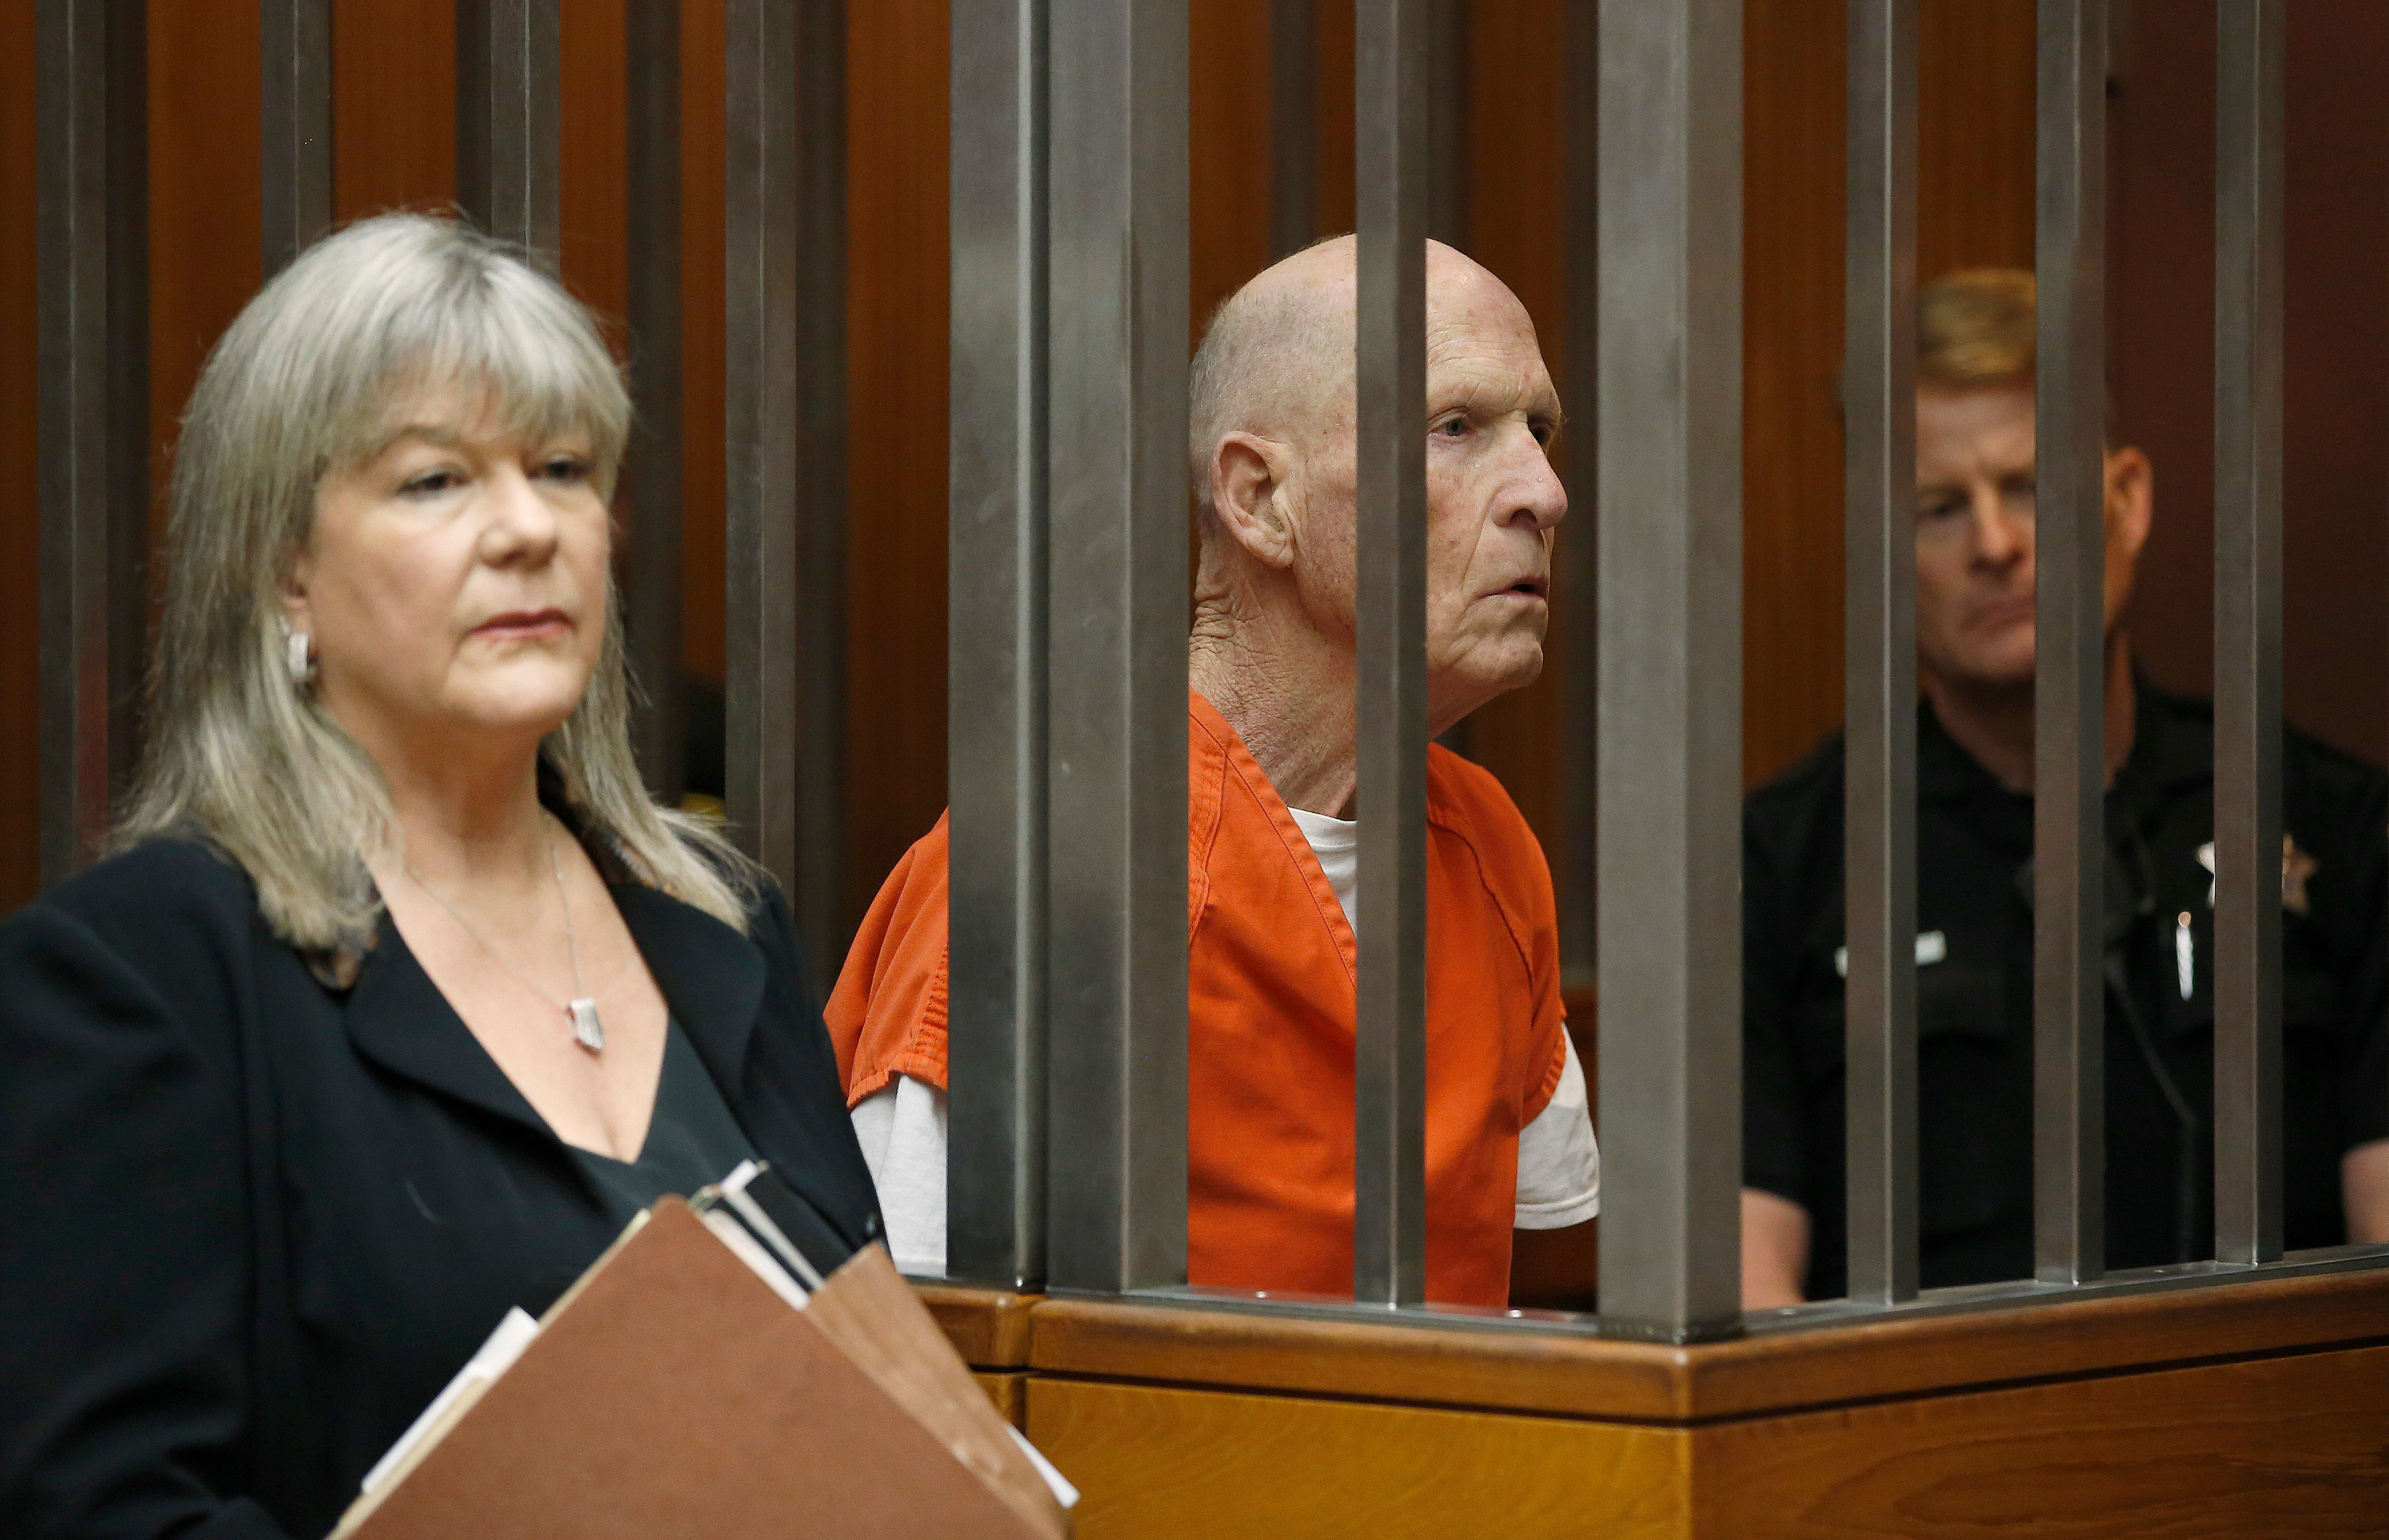 Joseph James DeAngelo, suspected of being the Golden State Killer, appears in Sacramento County Superior Court, with his attorney, Diane Howard, where prosecutors announced they will seek the death penalty if he is convicted in his case, Wednesday, April 10, 2019, in Sacramento, Calif. The announcement flies in the face of California Gov. Gavin Newsom, who recently announced a moratorium on executions. (AP Photo/Rich Pedroncelli)